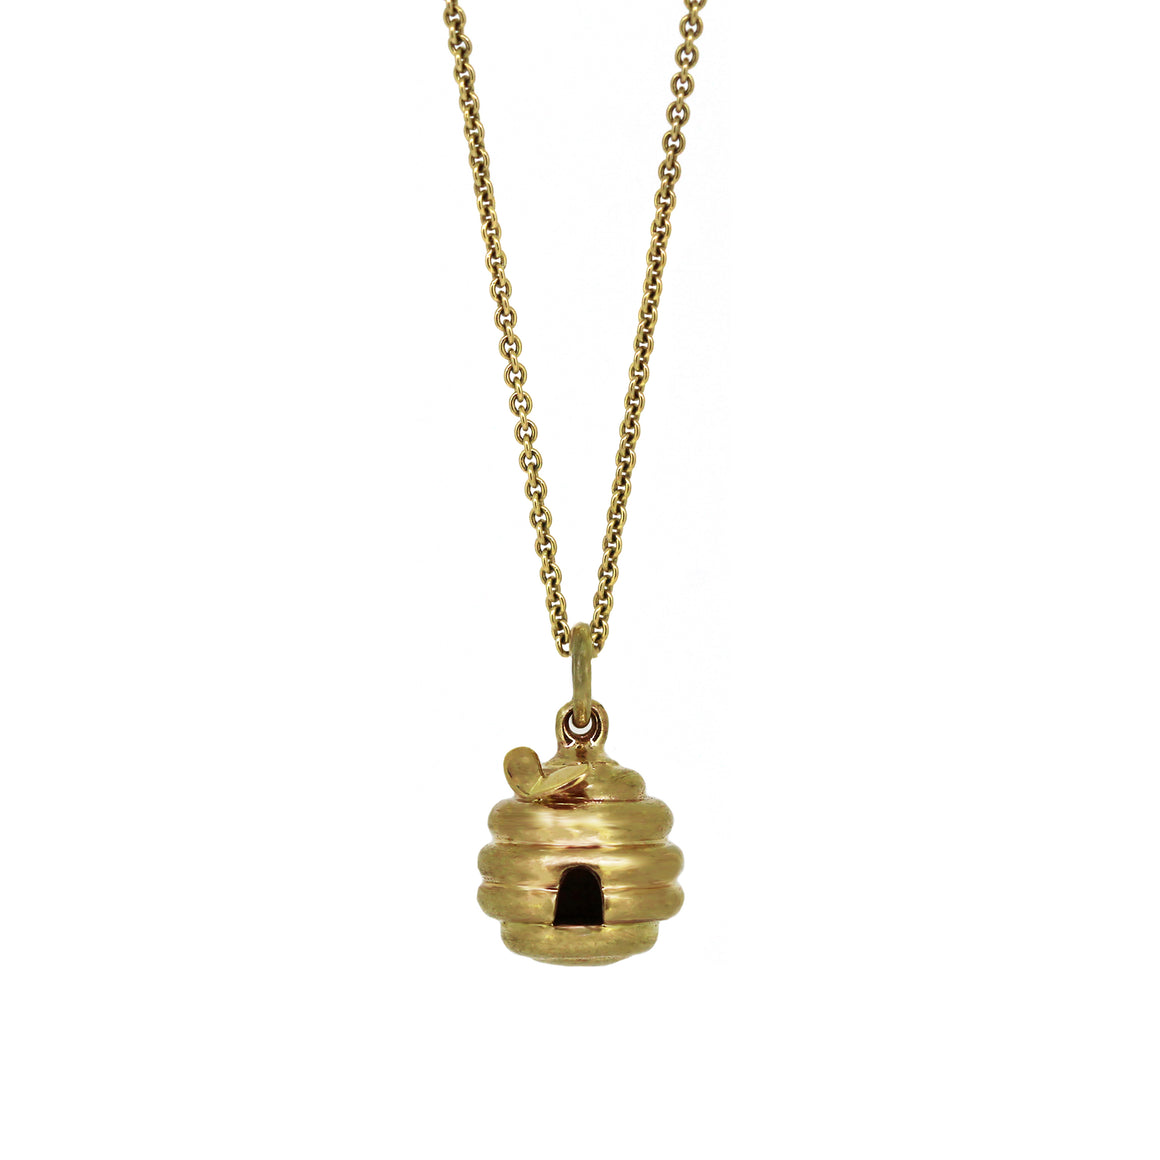 Gold Beehive Pendant with Bee